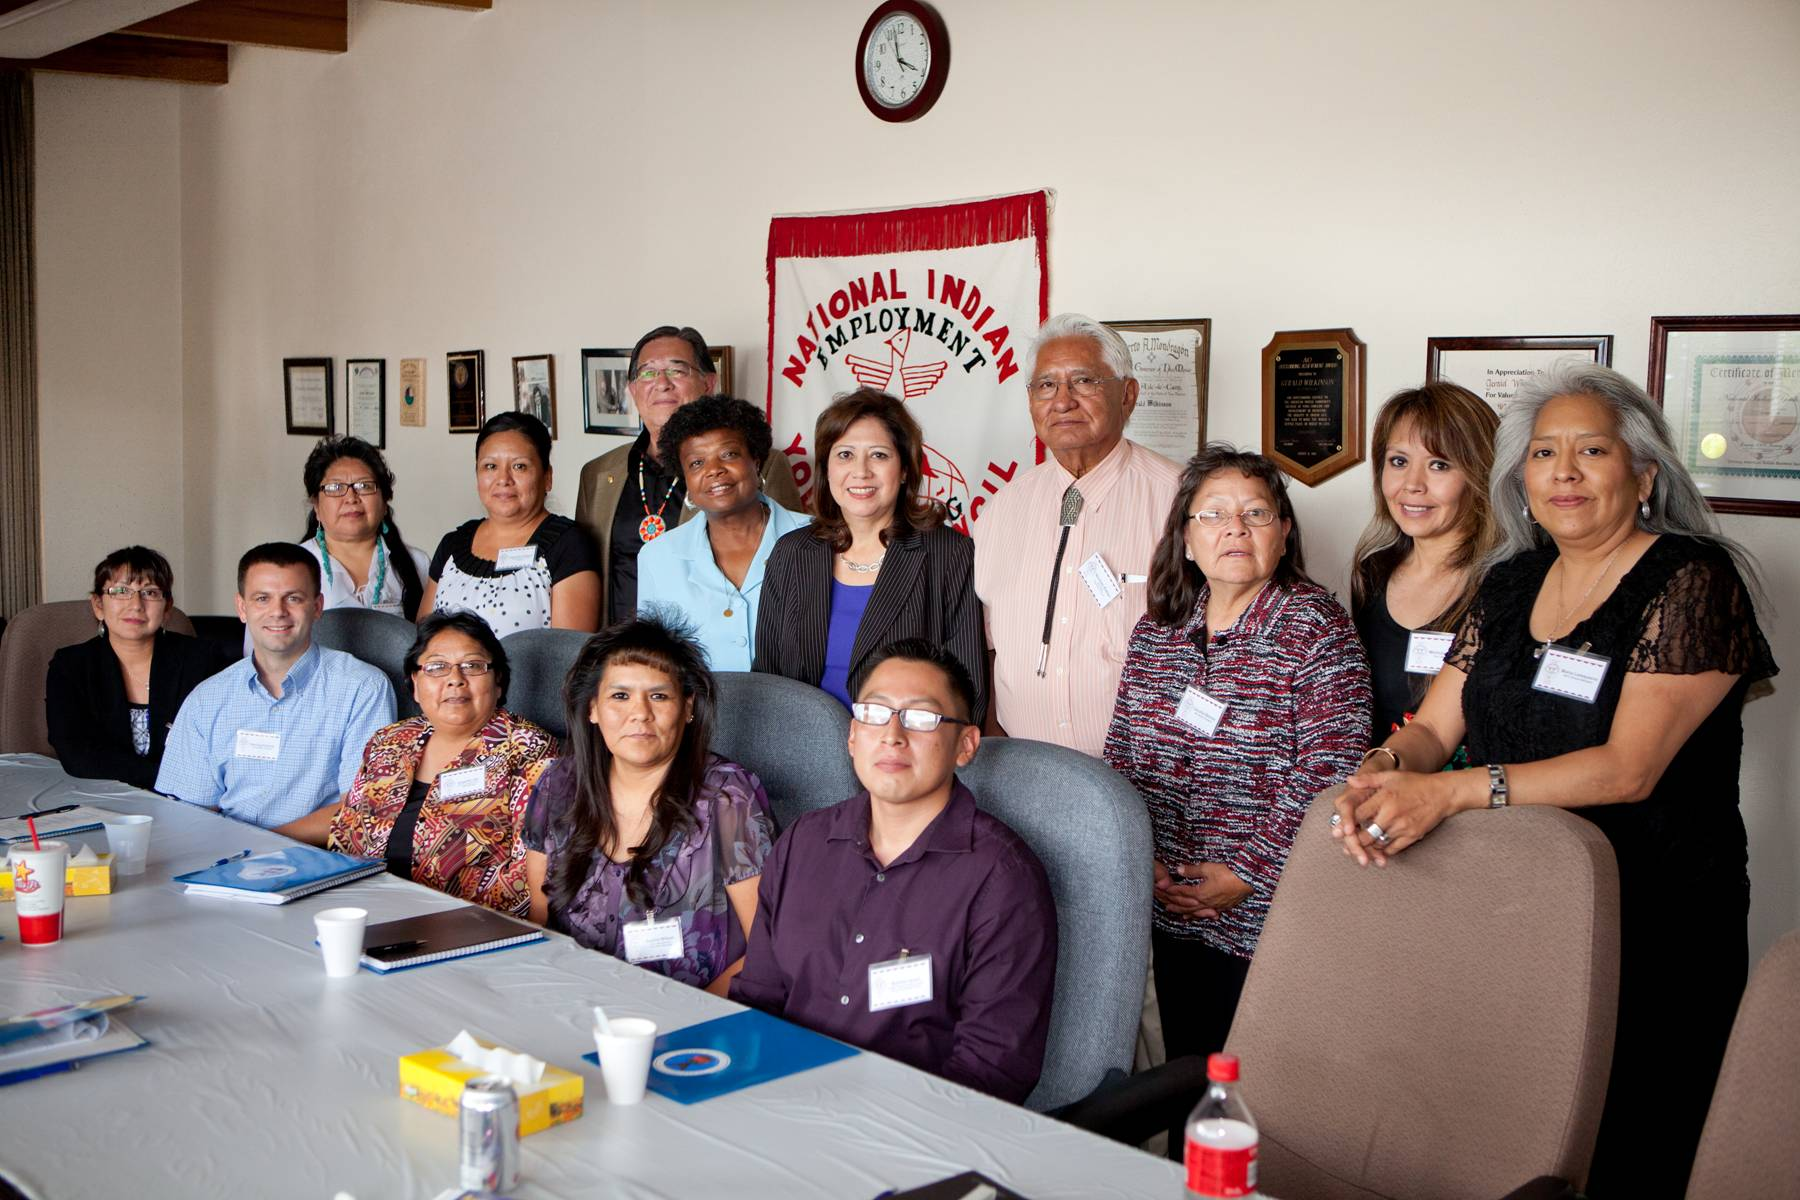 Secretary Solis Meets with the National Indian Youth Council